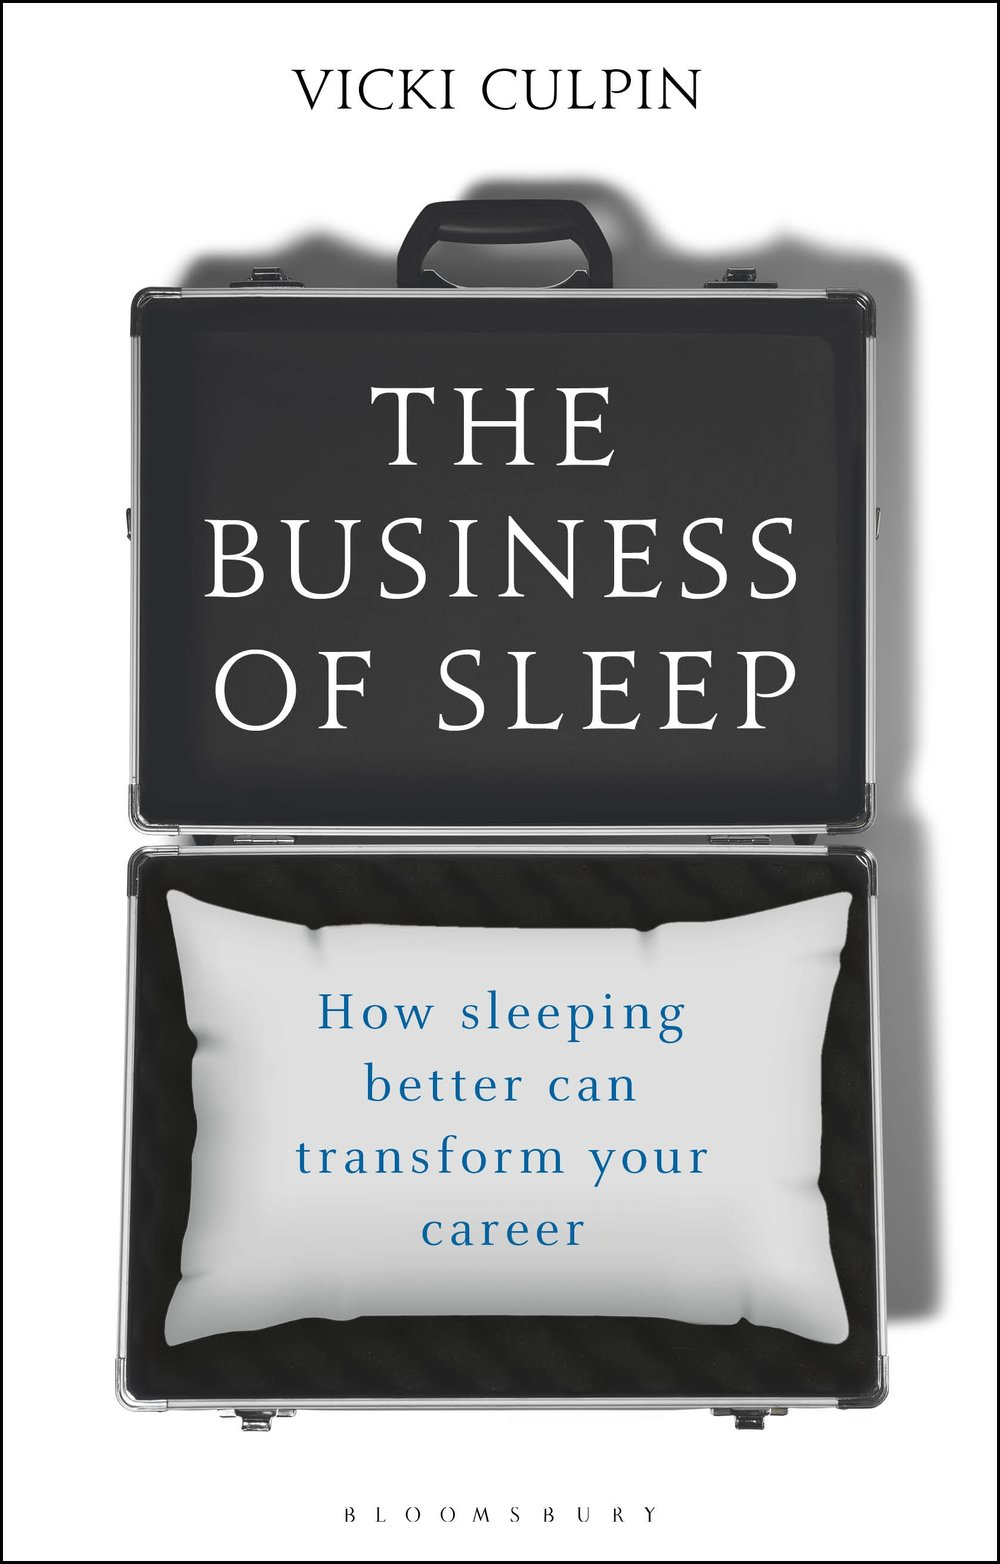 - The Business of Sleep is available here for purchase.